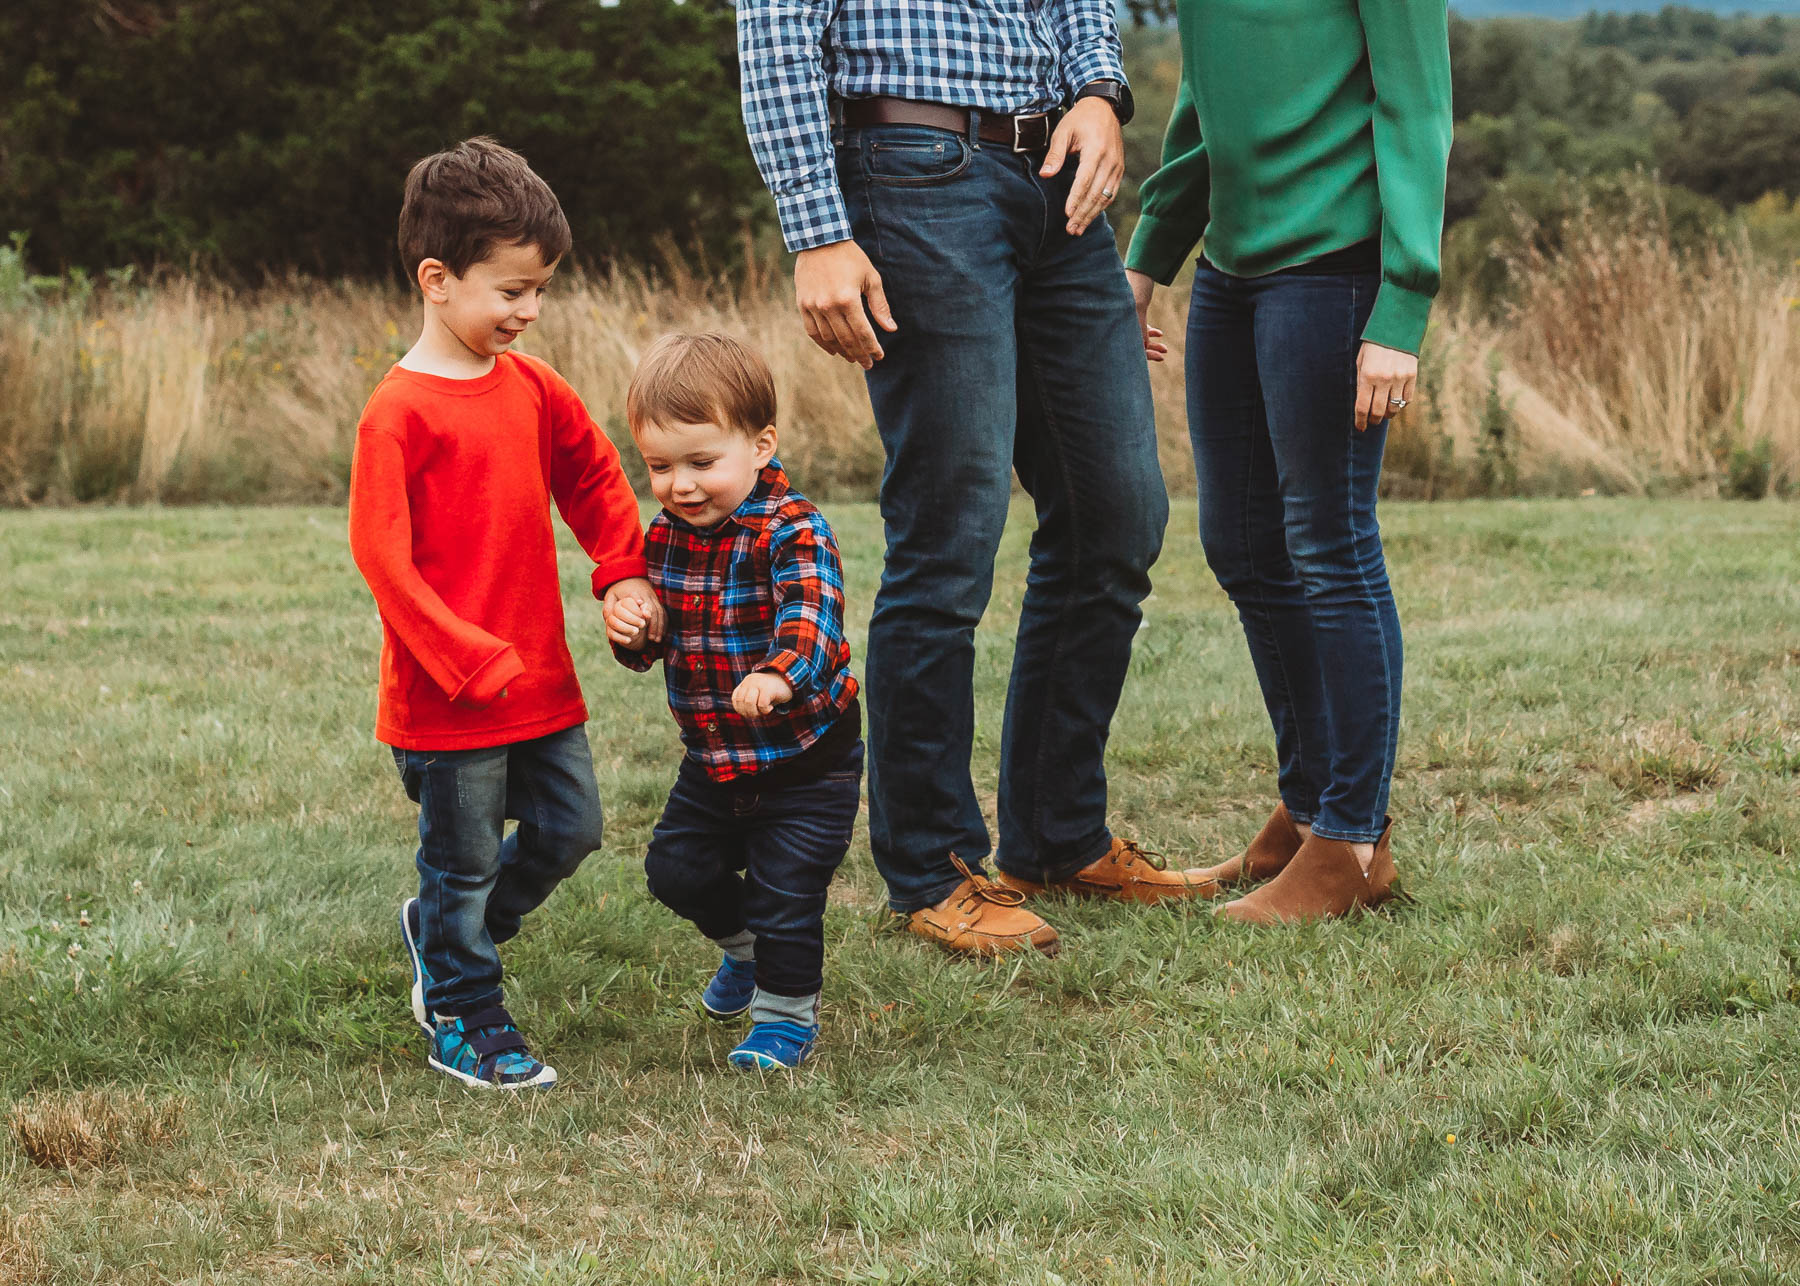 These little guys are growing up so fast! I love capturing all of their changes from year to year. Here are my tips to making sure your family gets first pick for fall family photos in Greater Boston.